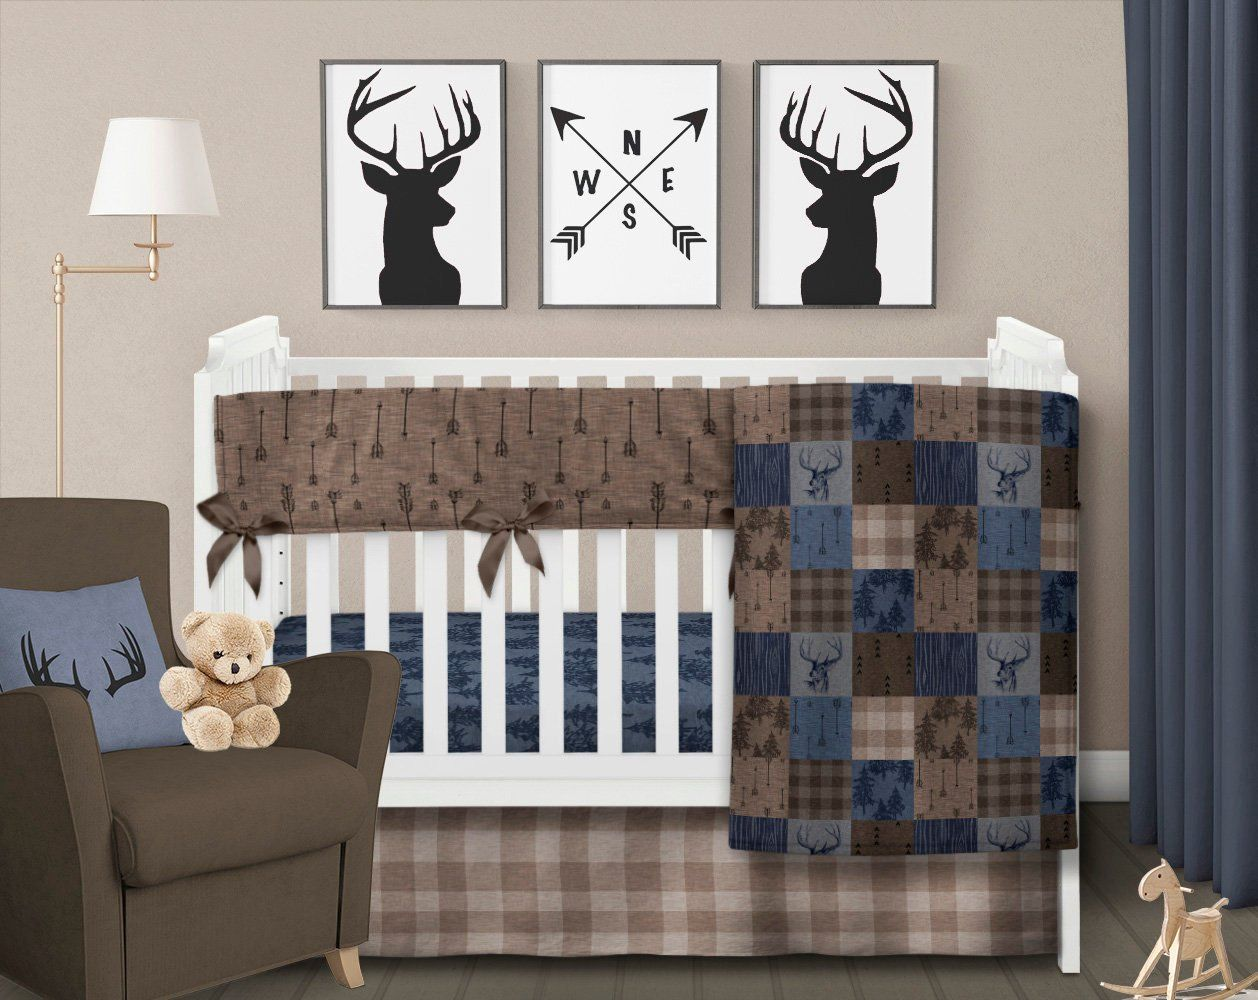 Rustic Crib Bedding Set Boy Nursery Bedding Deer Crib Bedding